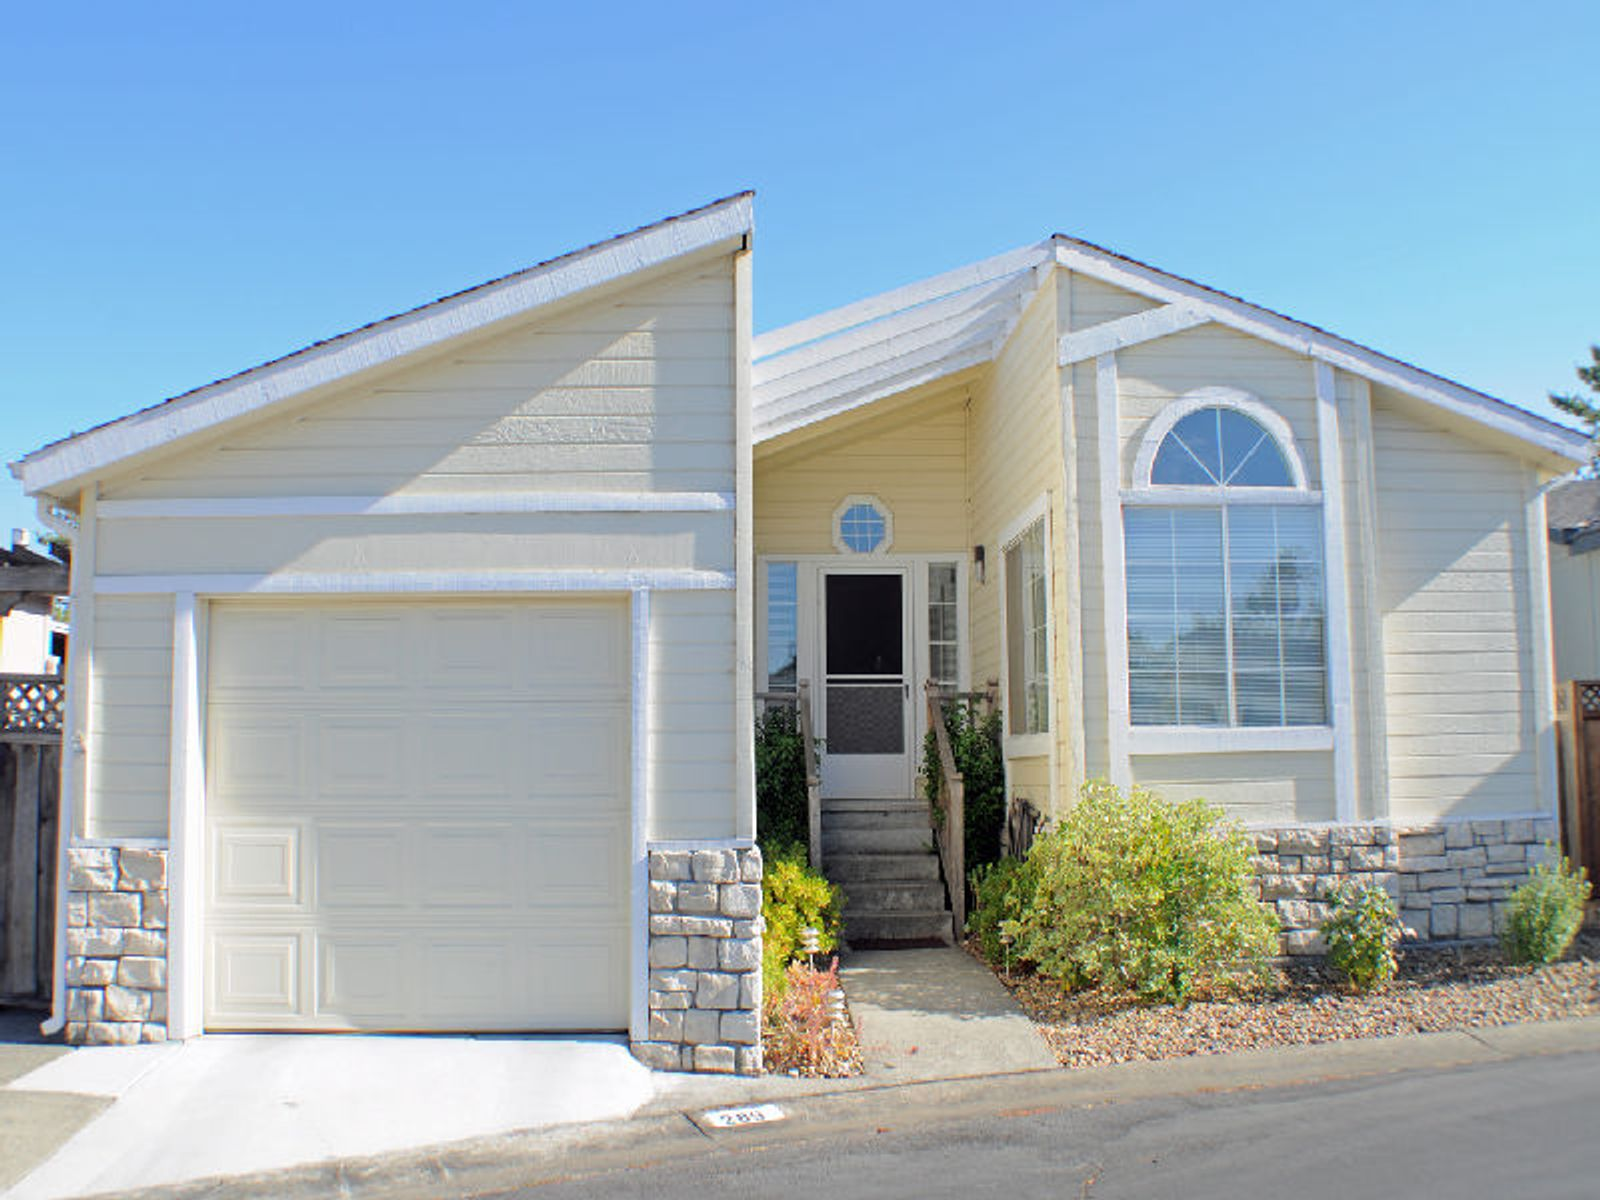 Mint Condition Modular, Sonoma CA Other Residential - Sonoma - Napa Real Estate